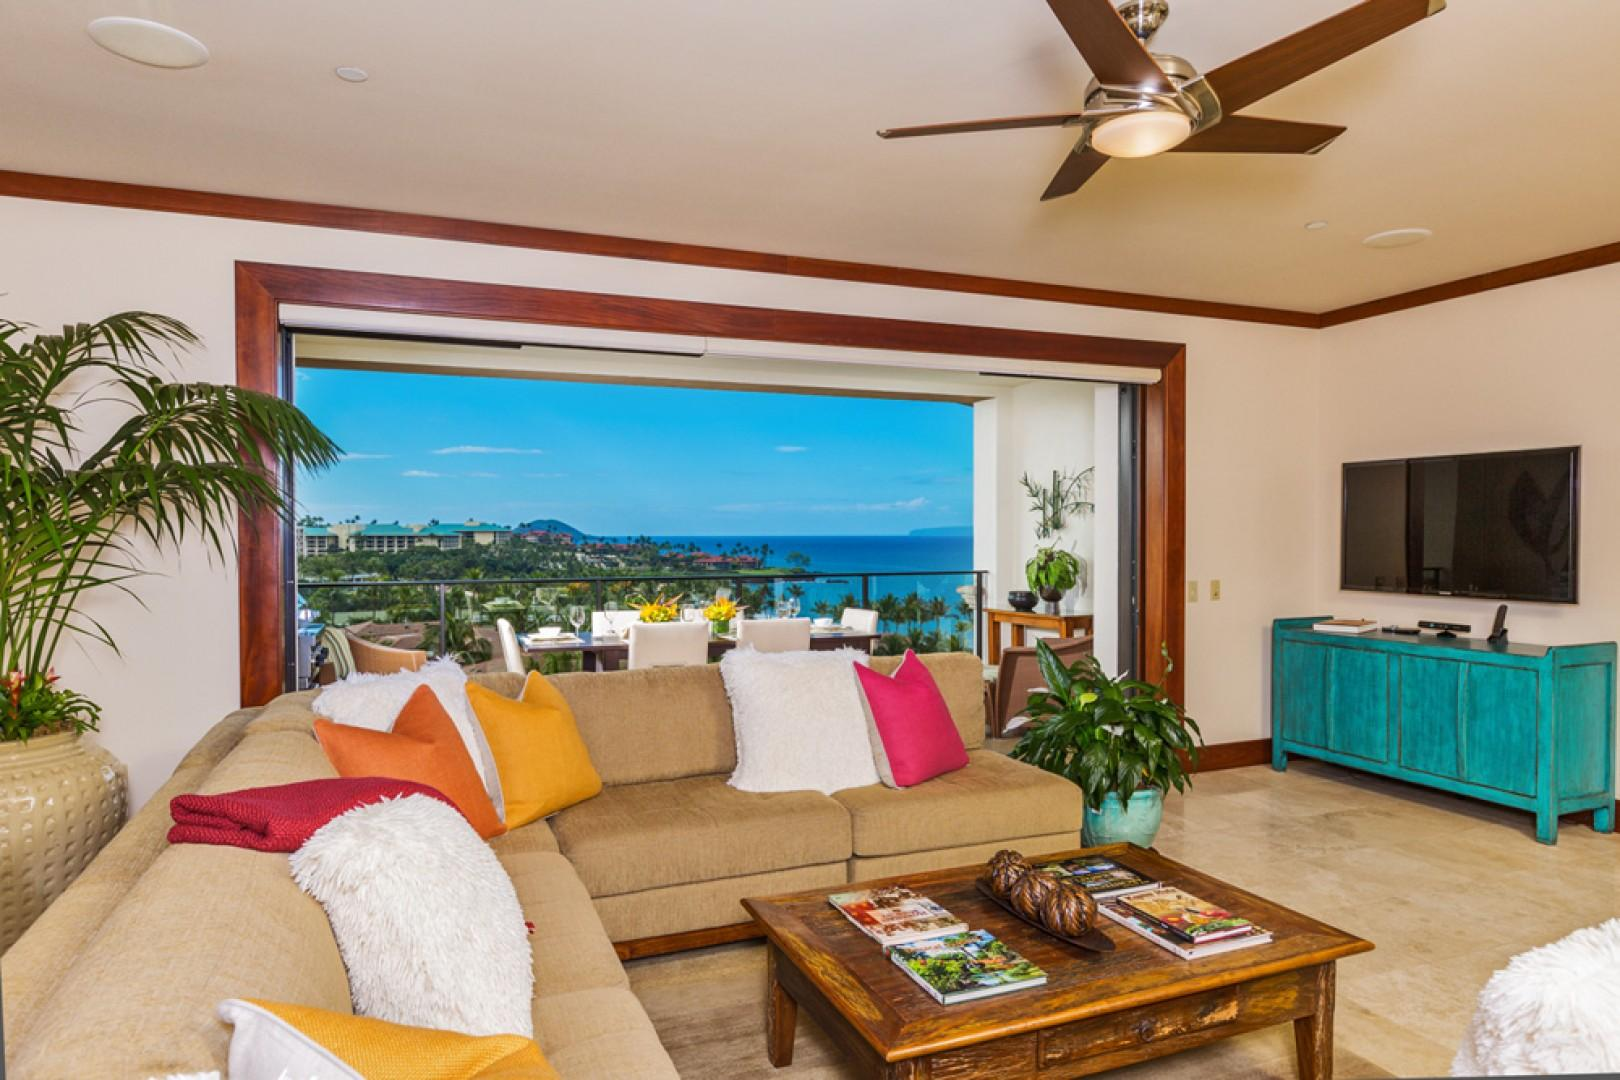 L509 Sandcastles Suite - An Elegant Great Room and Priceless View! Comfortable Seating for Eight Guests, Super-Thin Pull-Out Mounted Samsung Television with Surround Sound, iPod dock, Wireless Internet, HD DVR/PVR, HD Digital Cable Service, DVD/CD Player,